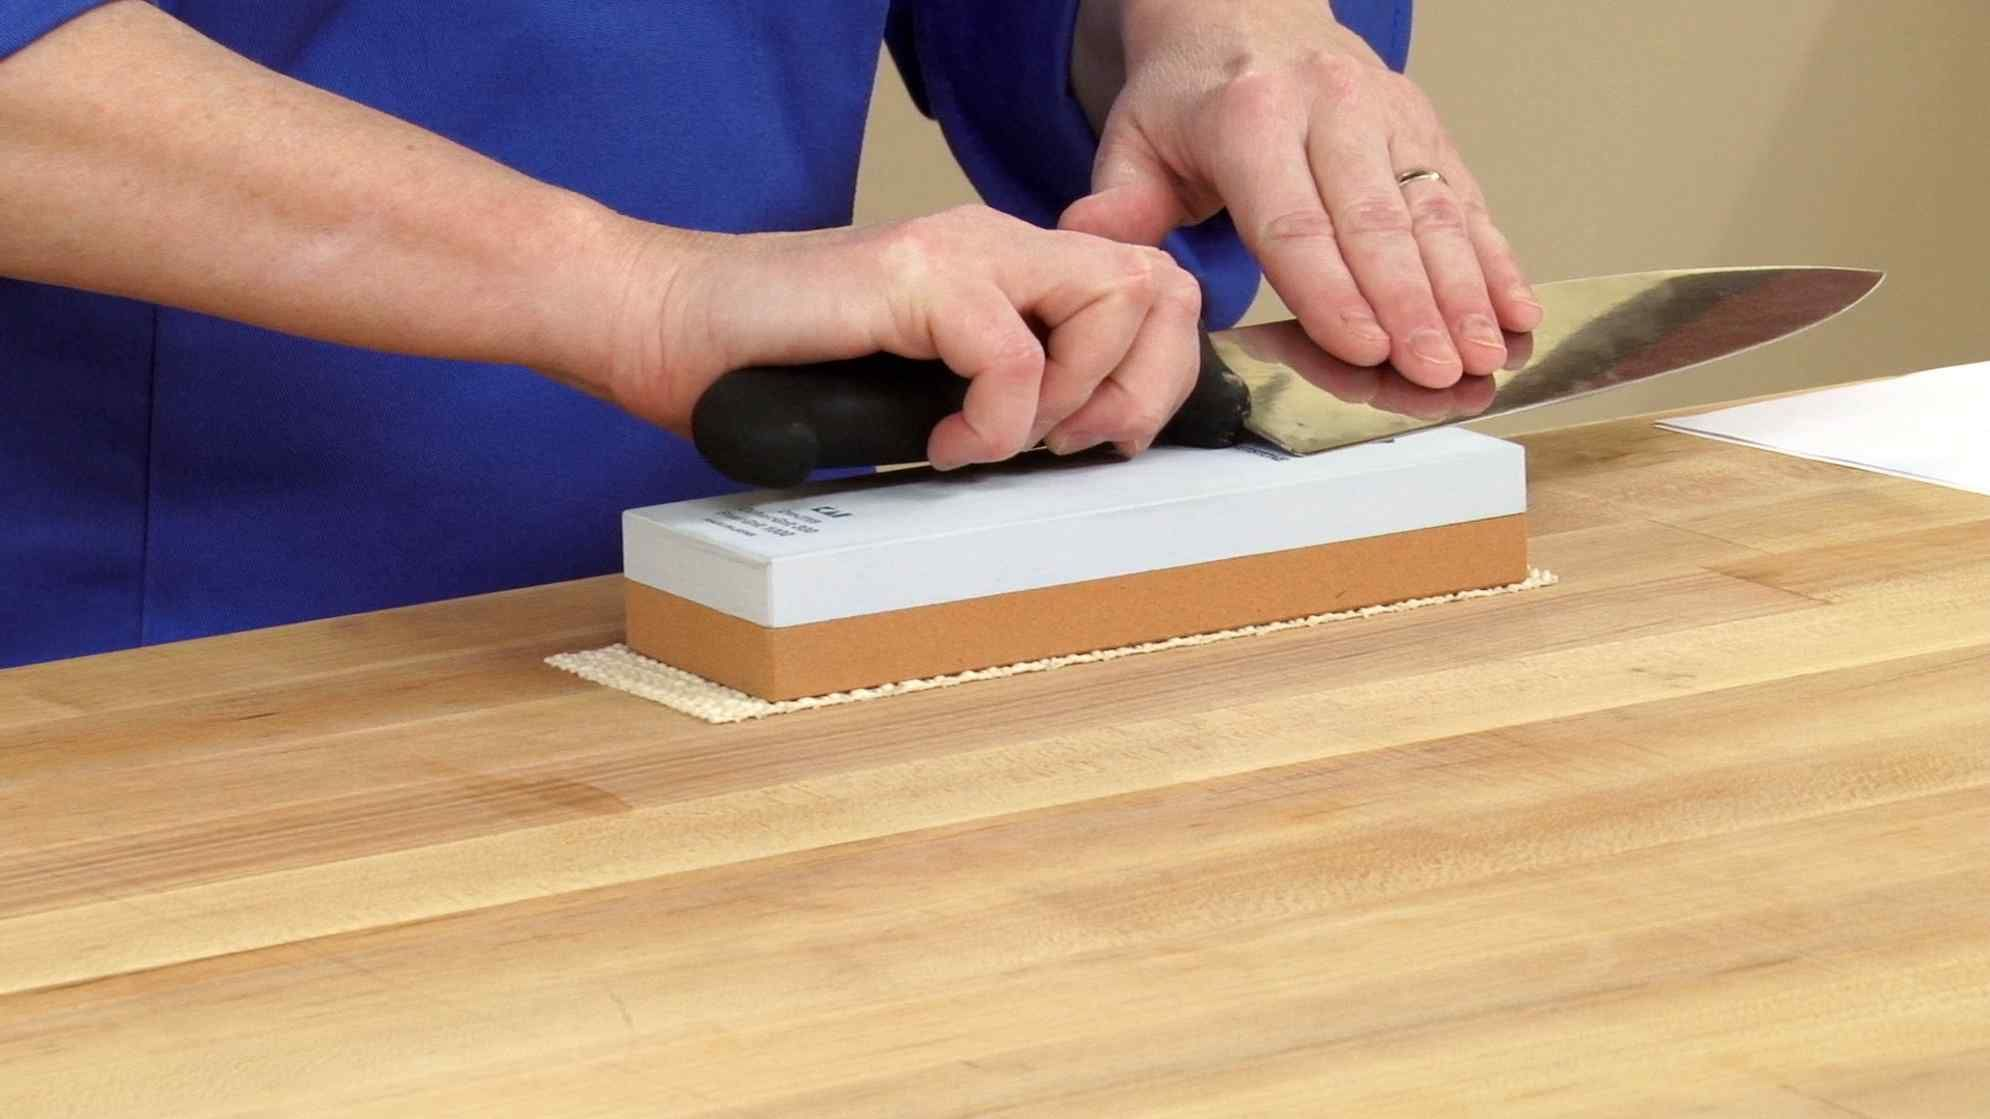 How To Use A Sharpening Stone Effectively Step By Step Guide Just Machete Knife Sharpening Stone Diy Knife Sharpening Stone